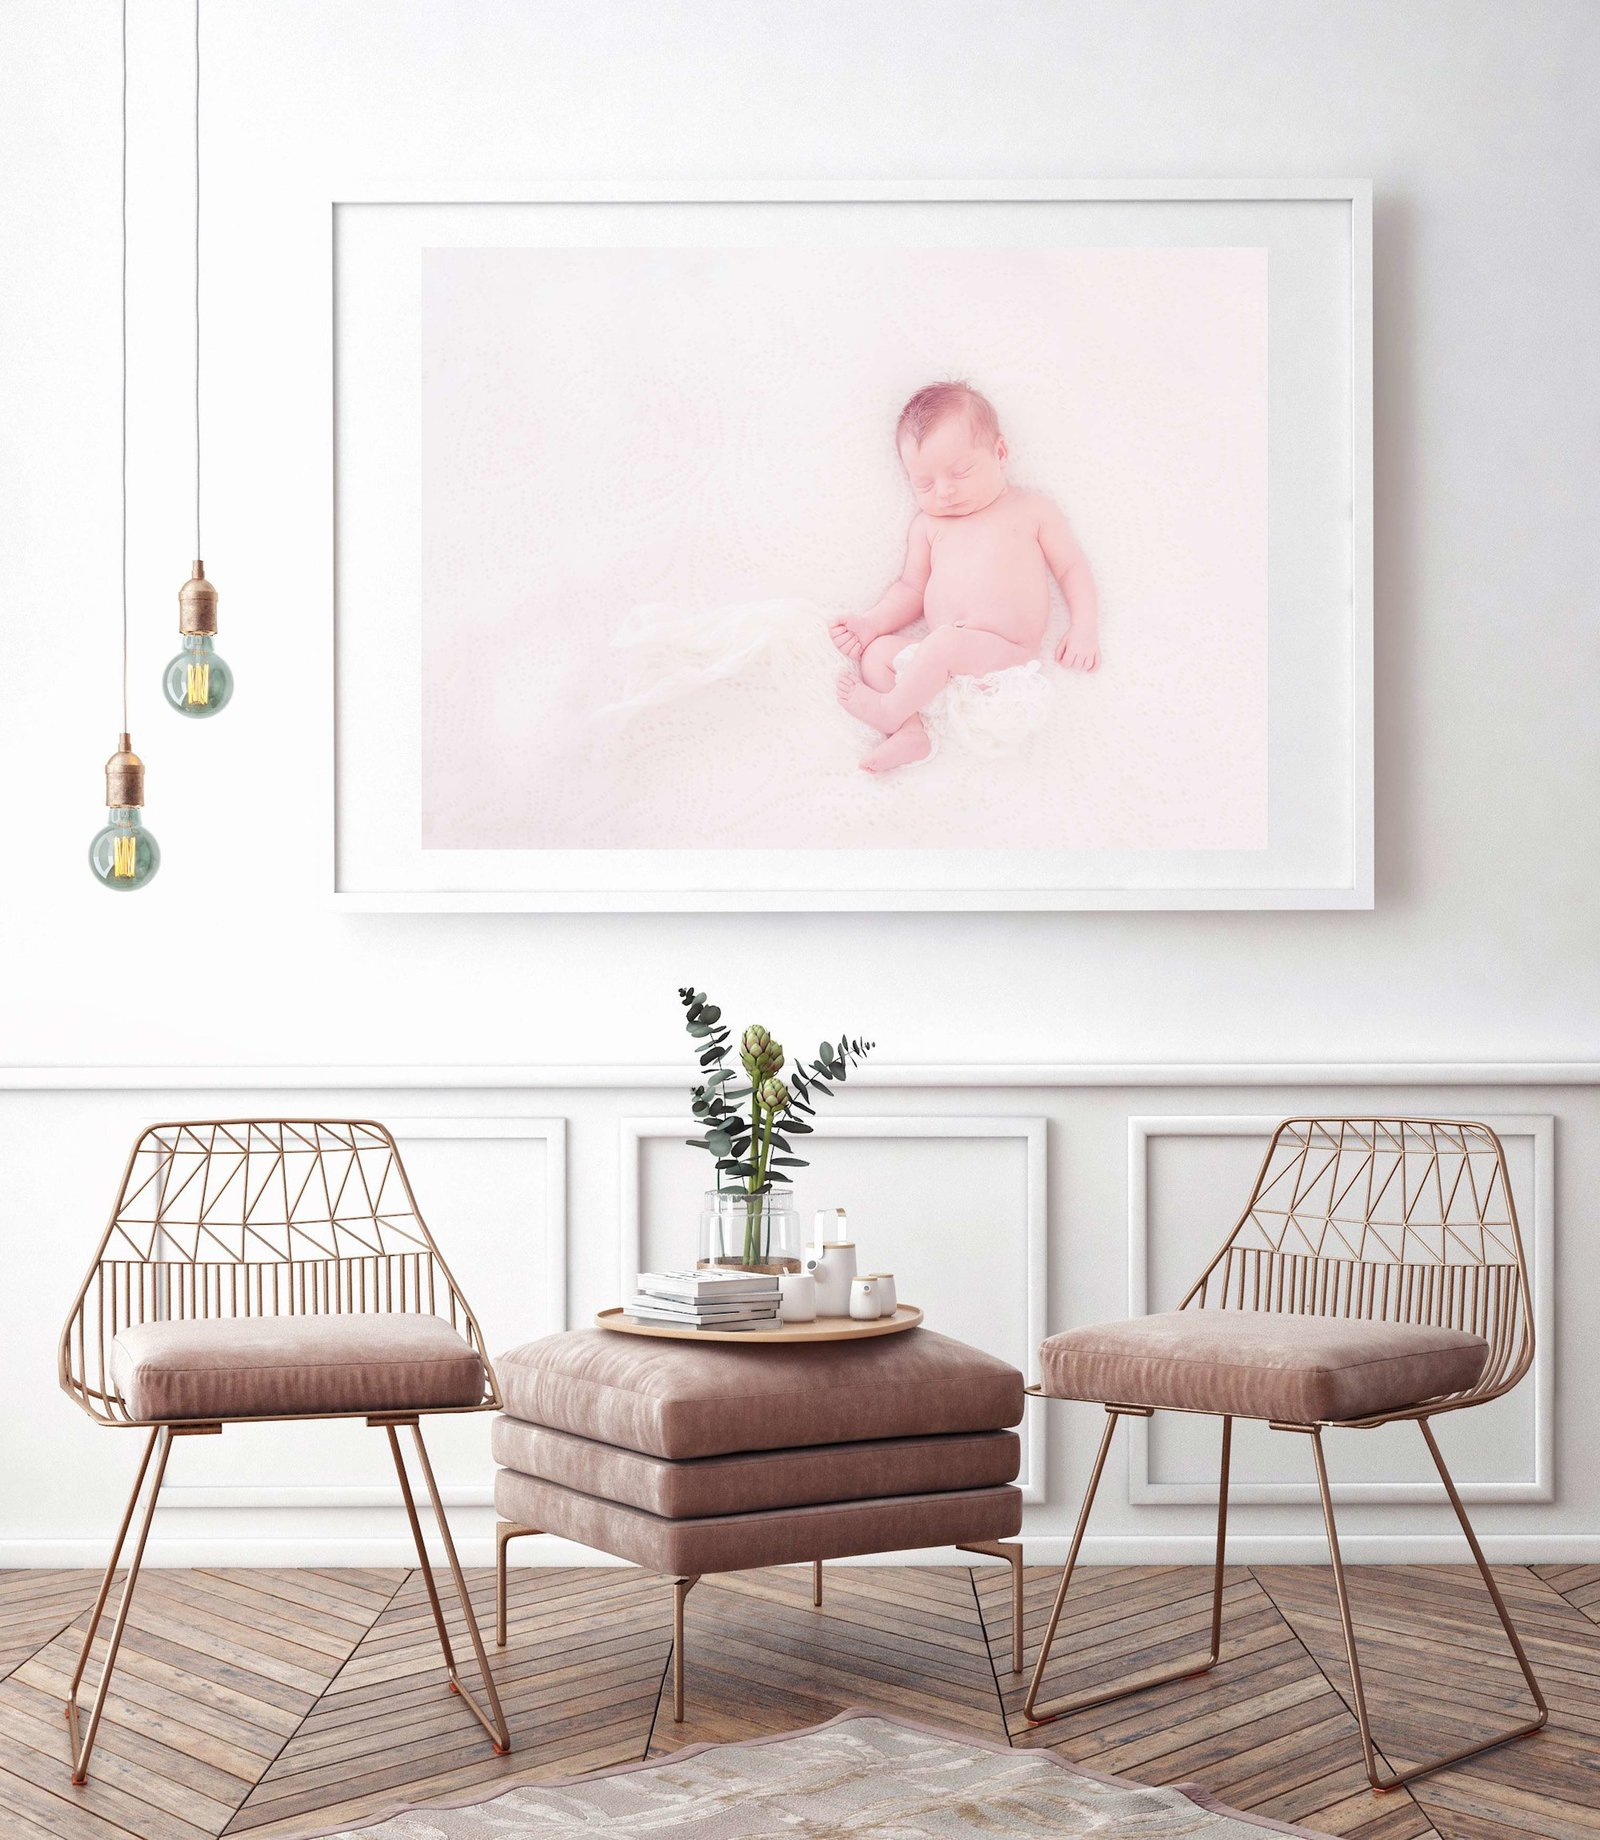 Rose-Gold-Chairs-+-Cushions-with-Large-Portrait-Mockup-web